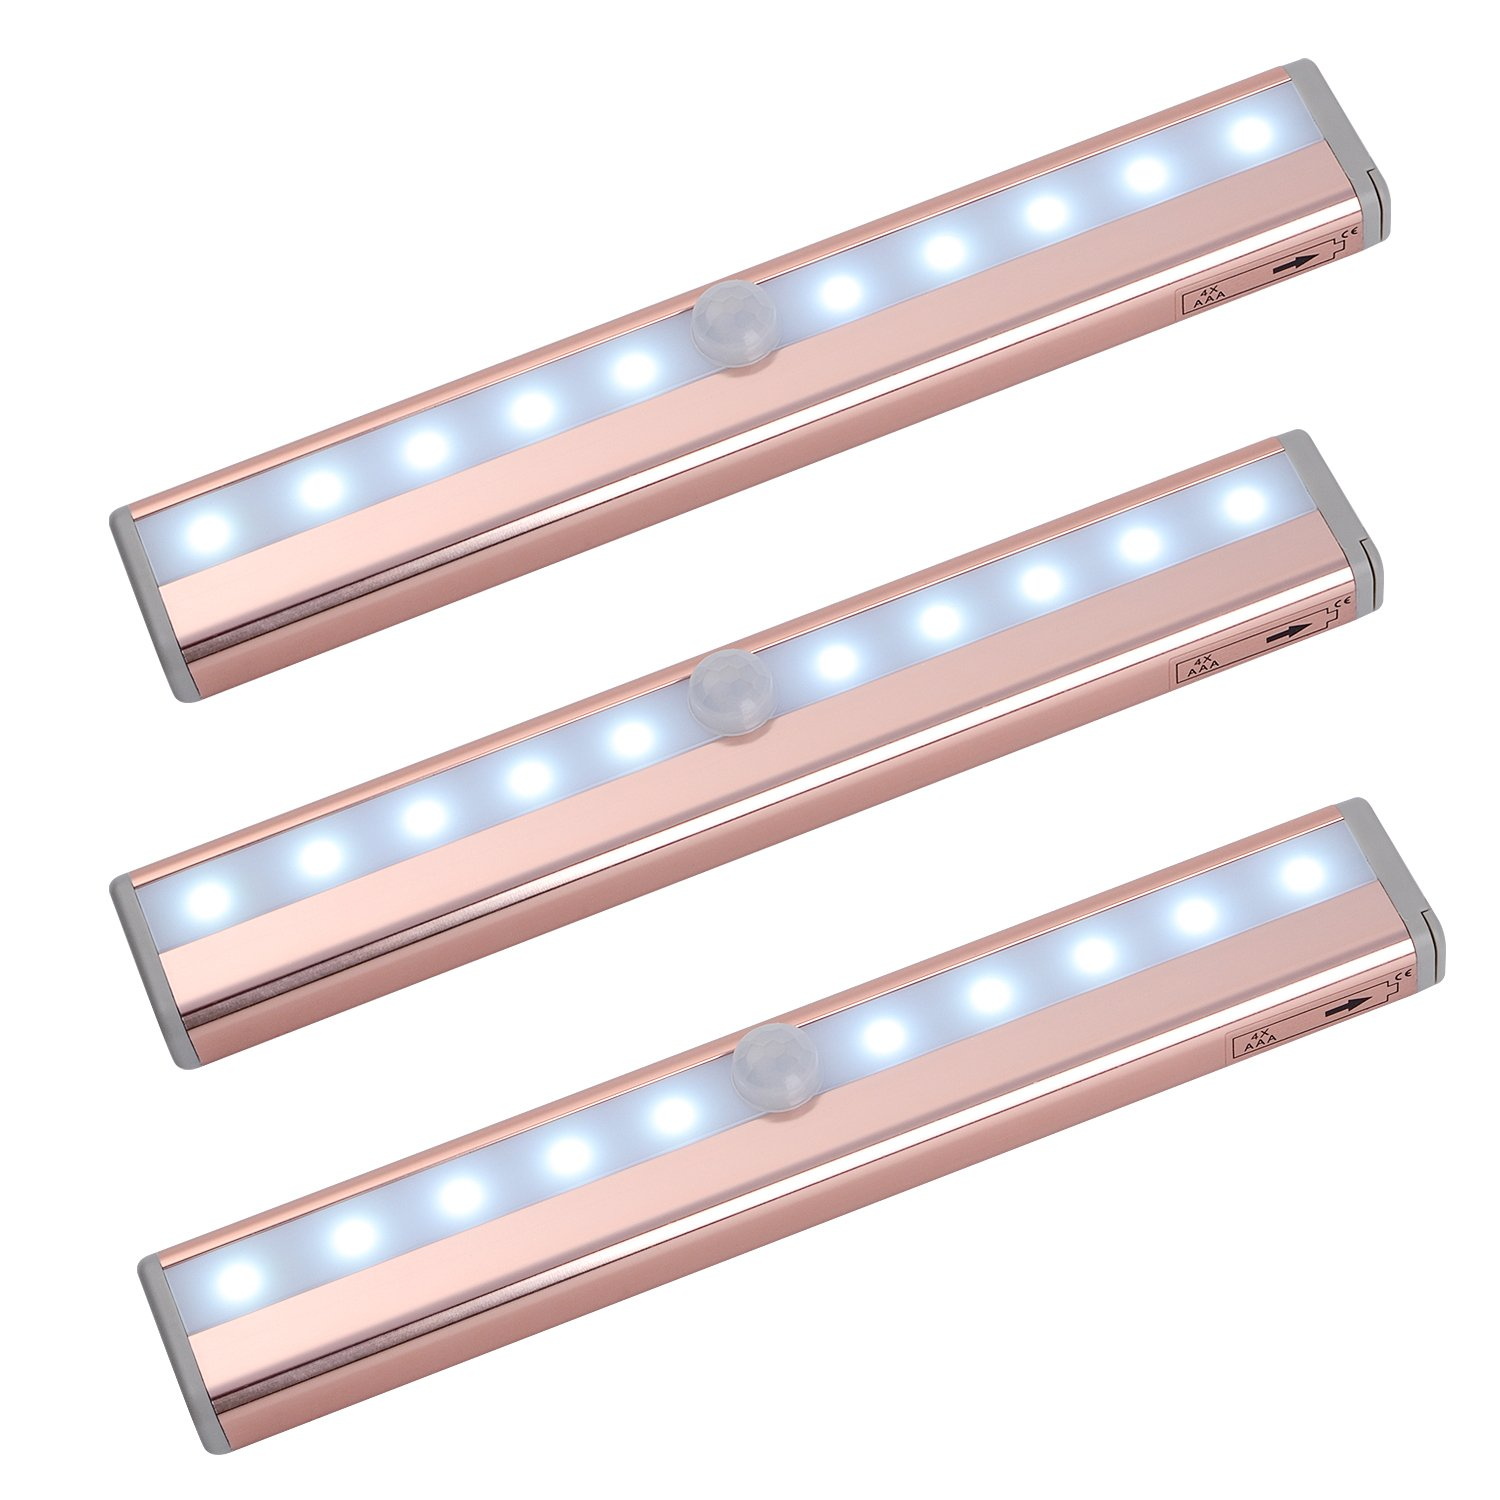 zoeson 10 LED 3-Pack Motion Sensing Closet Light Under Cabinet Light (Rosegold with Cool Colors) (3)